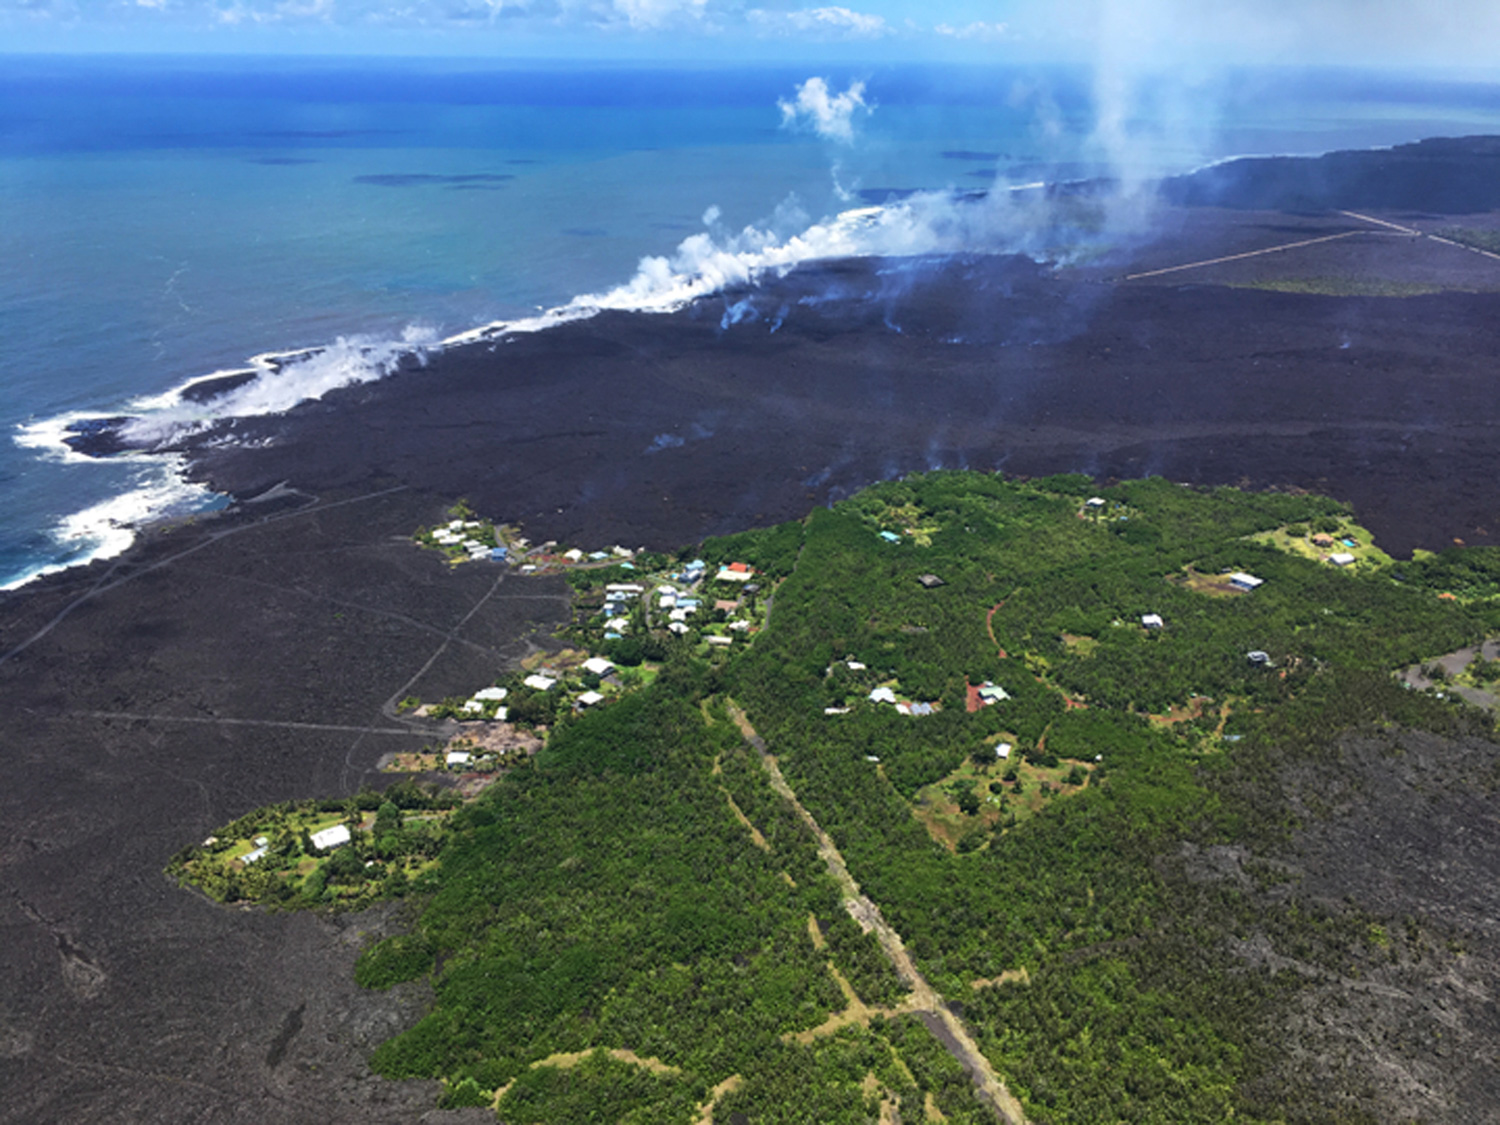 <div class='meta'><div class='origin-logo' data-origin='none'></div><span class='caption-text' data-credit='U.S. Geological Survey via AP'>The remains of the Kapoho Beach Lots subdivision and a fissure flow front at the town of Kapoho on the island of Hawaii.</span></div>